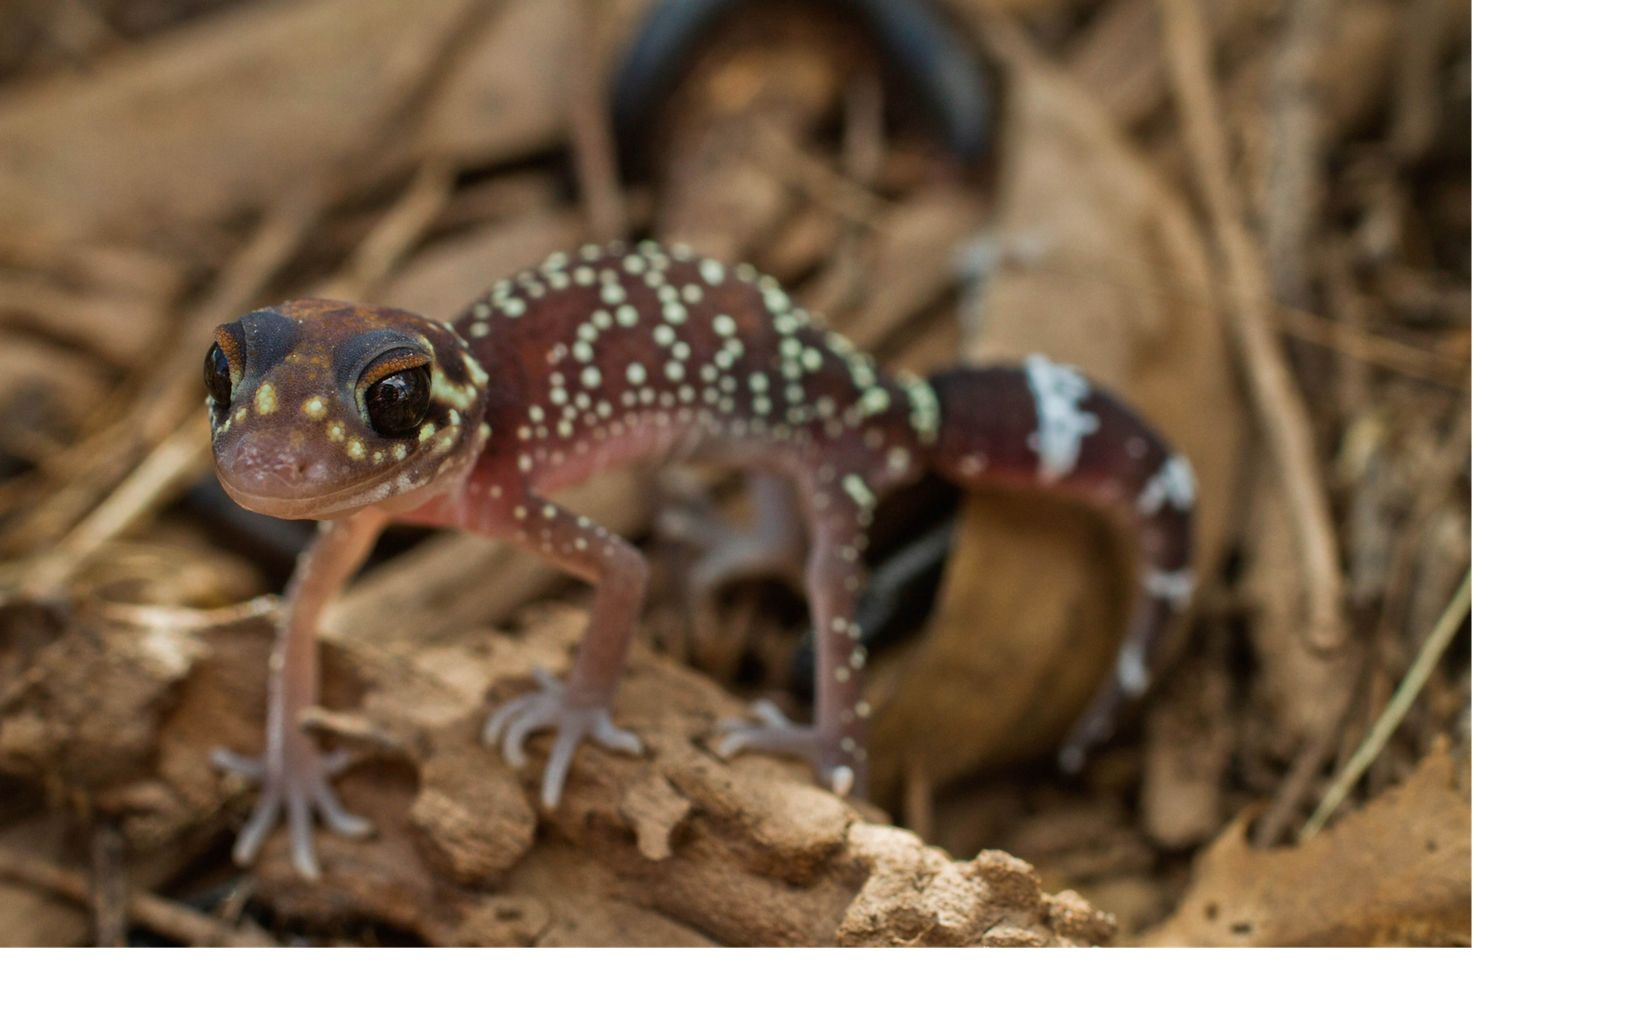 aka Barking Gecko can be found across southern Australia from south west of Western Australia through to south east Queensland, but not found in southern Victoria or Tasmania.